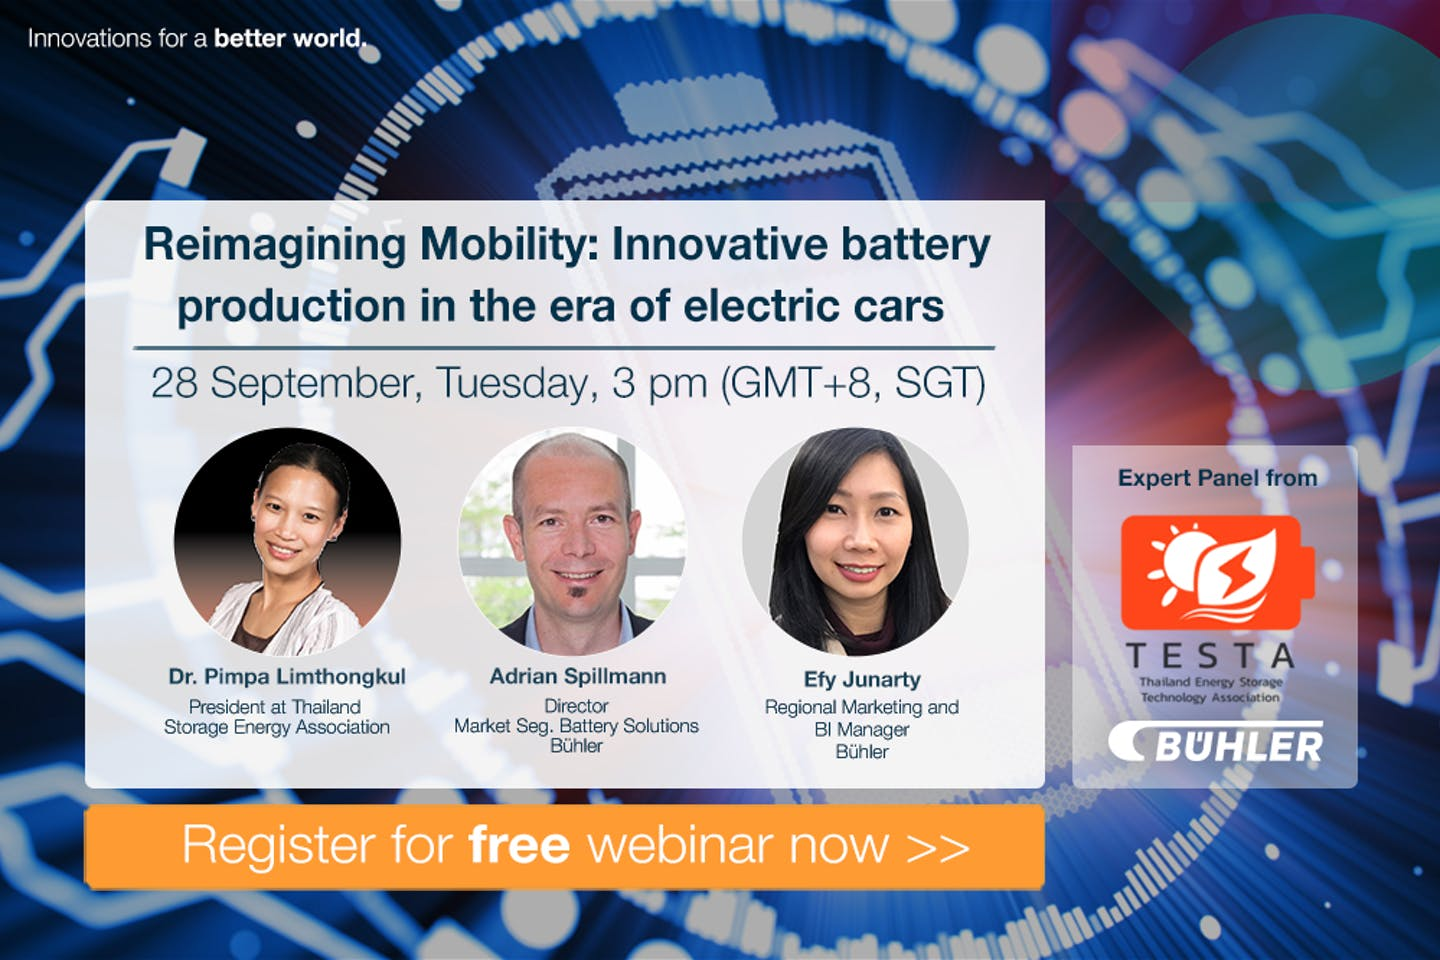 Reimagining mobility: Innovative battery production in the era of electric cars